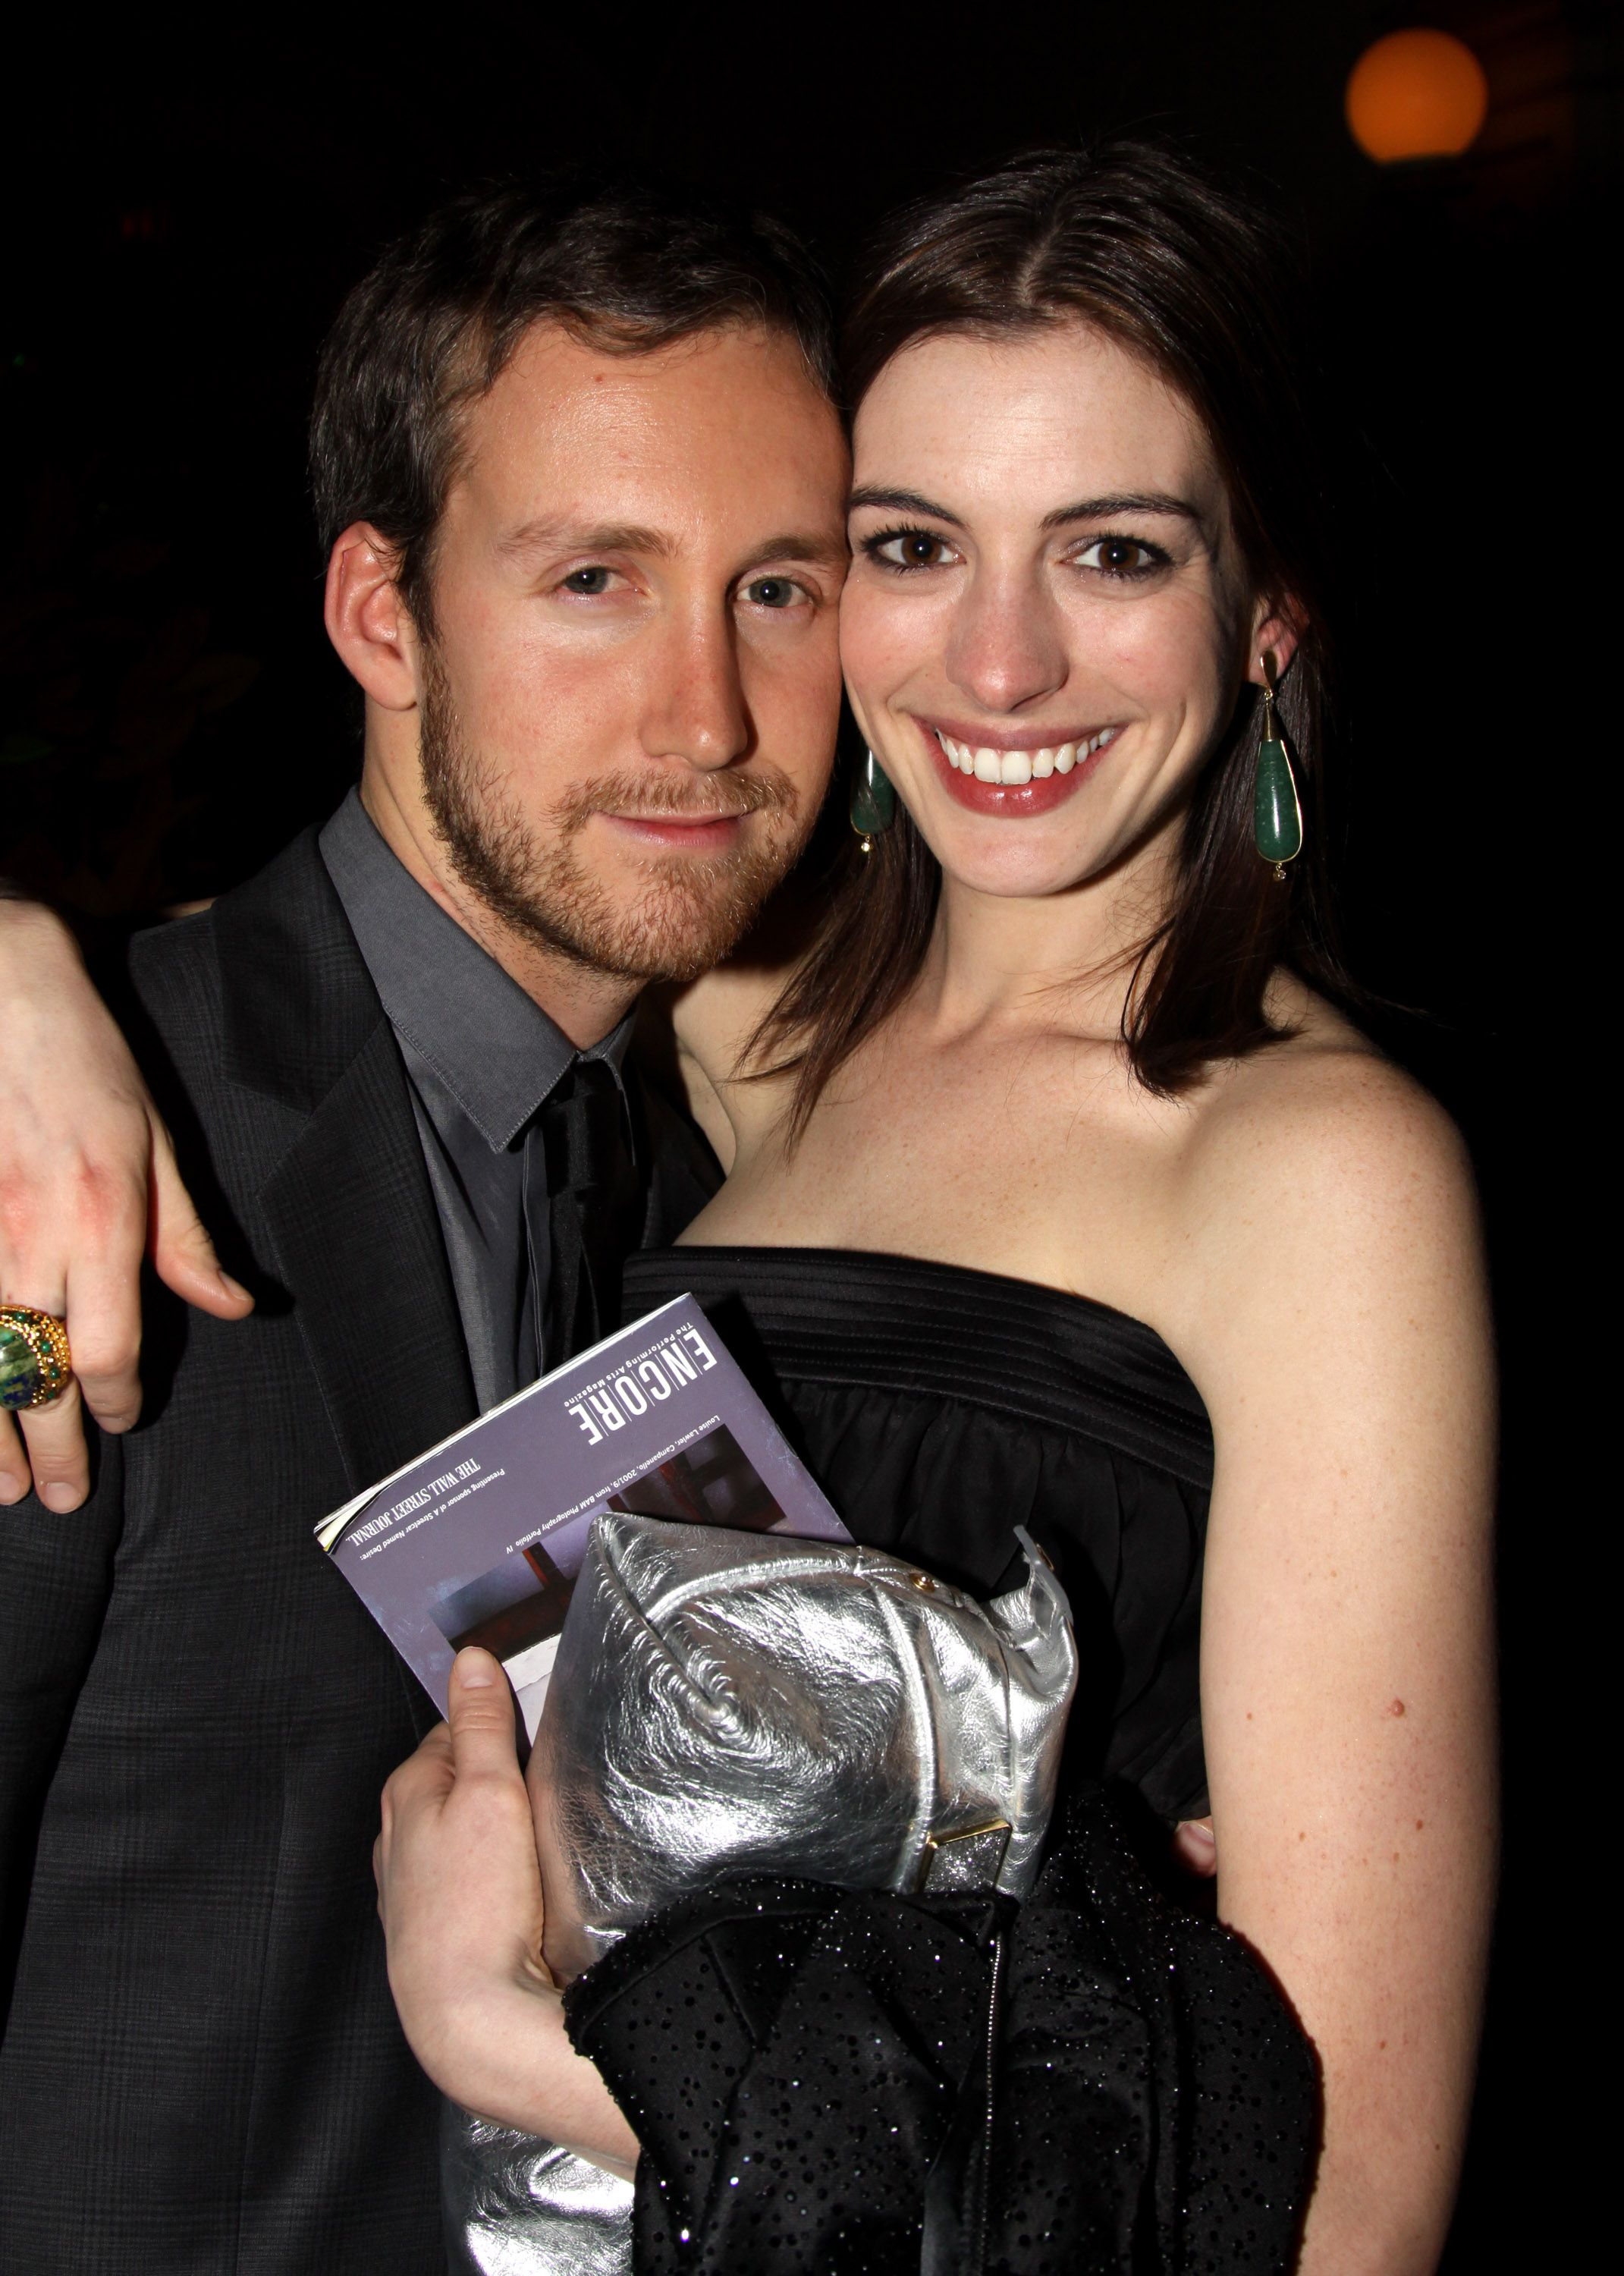 Anne Hathaway and Adam Shulman The couple were introduced by a mutual friend at the Palm Springs Film Festival in 2008. The two have been married since 2012 and have a son together, so I guess you could say things worked out nicely.